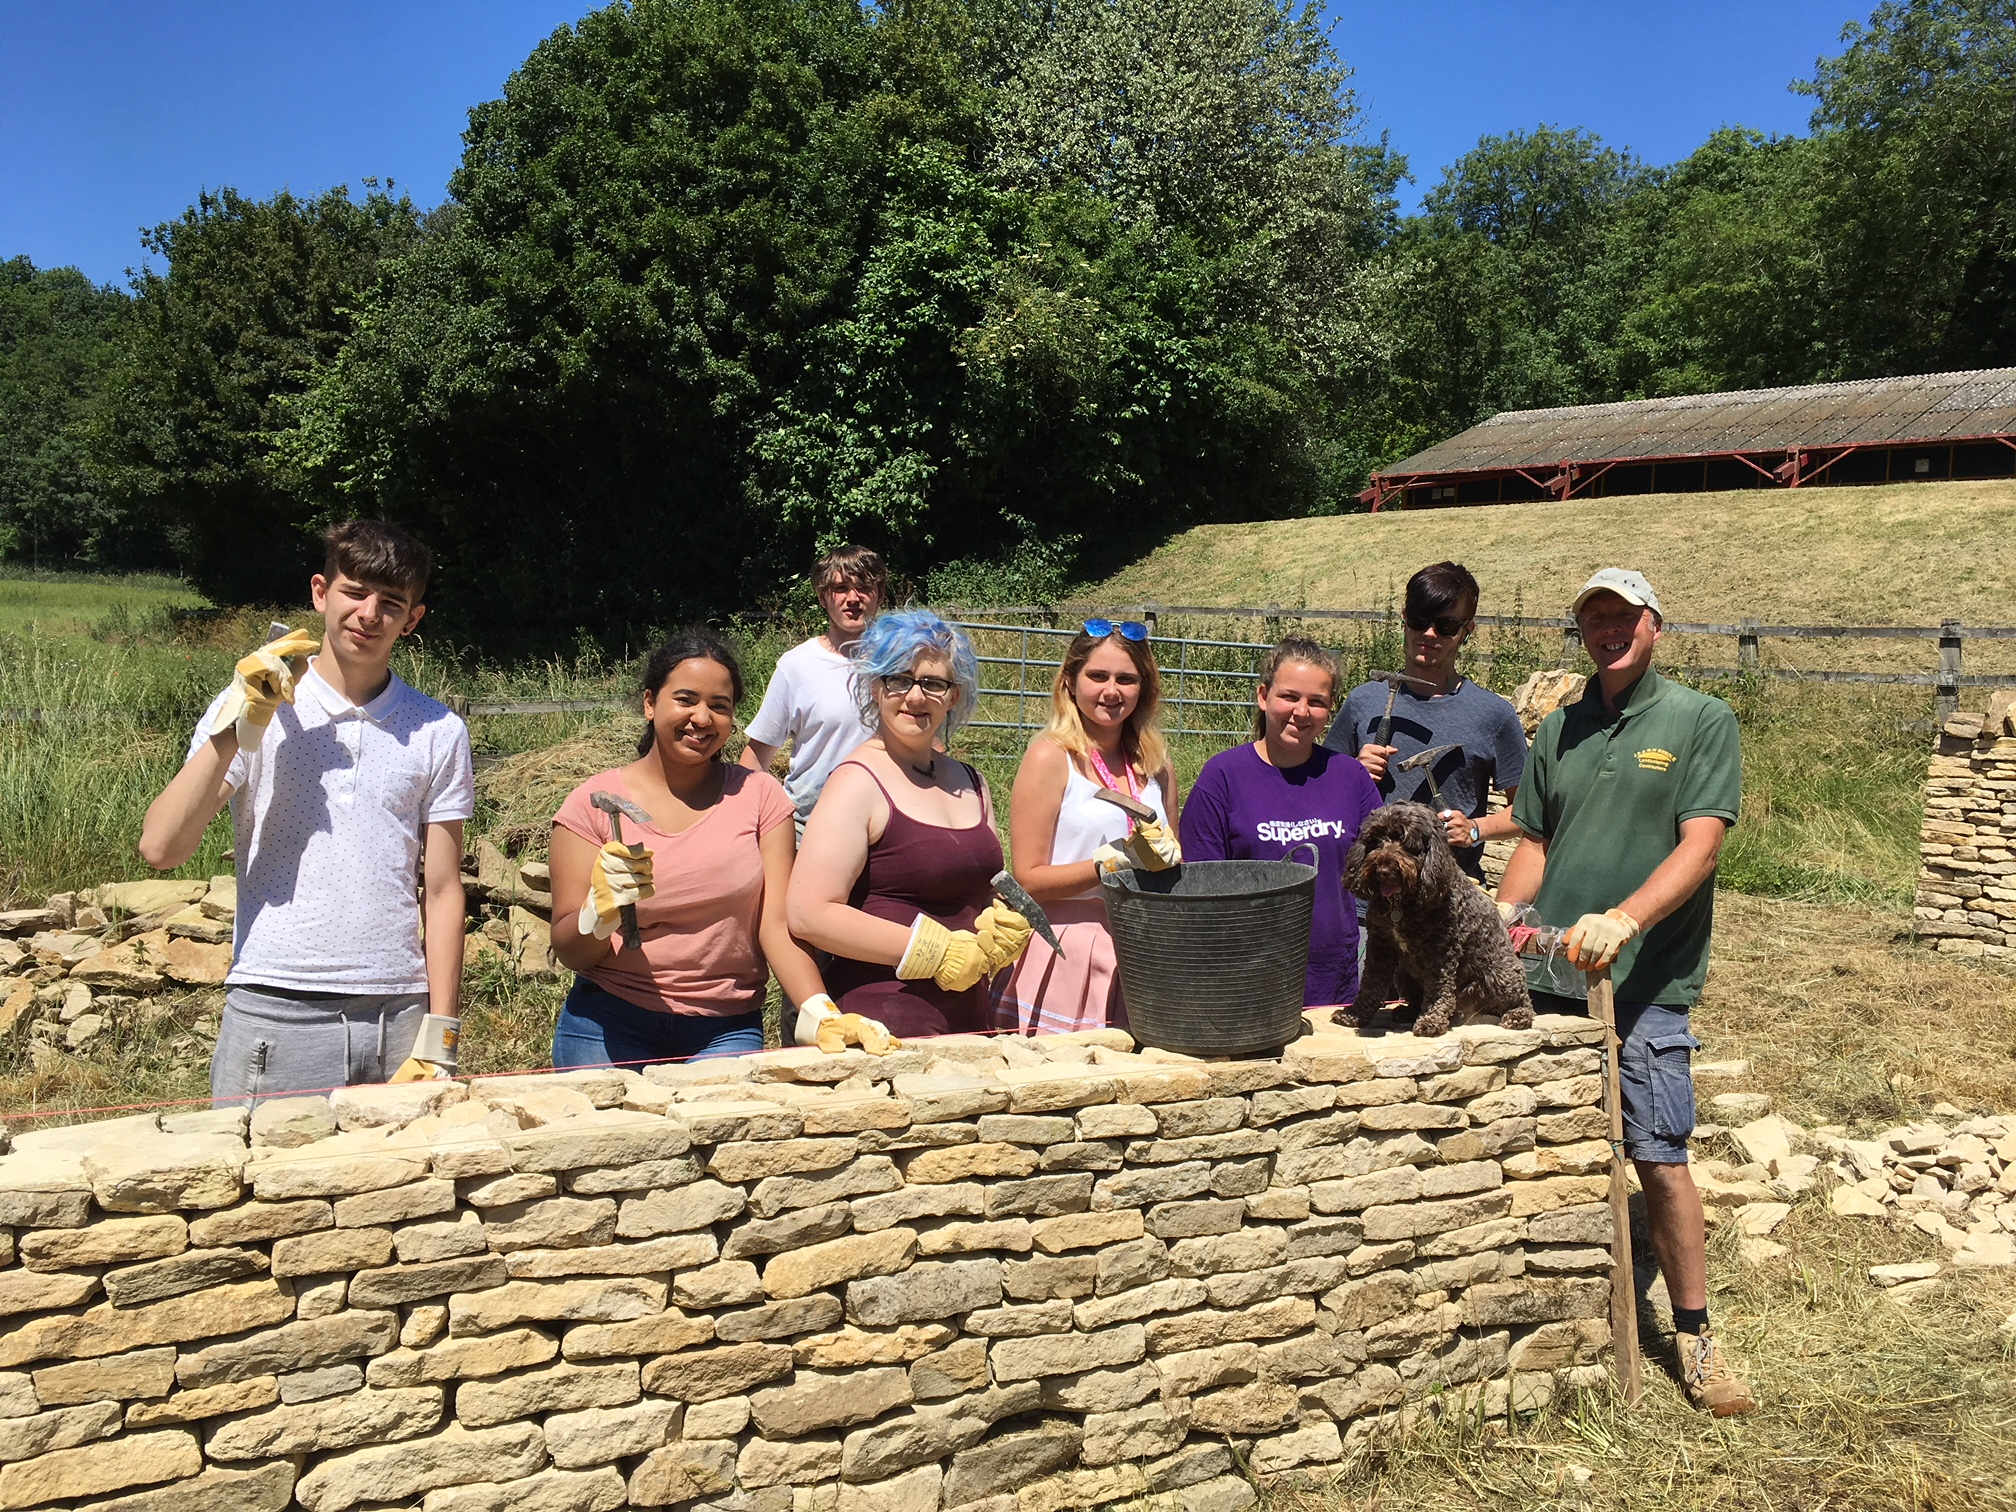 A group of people by a dry stone wall in the Cotswolds